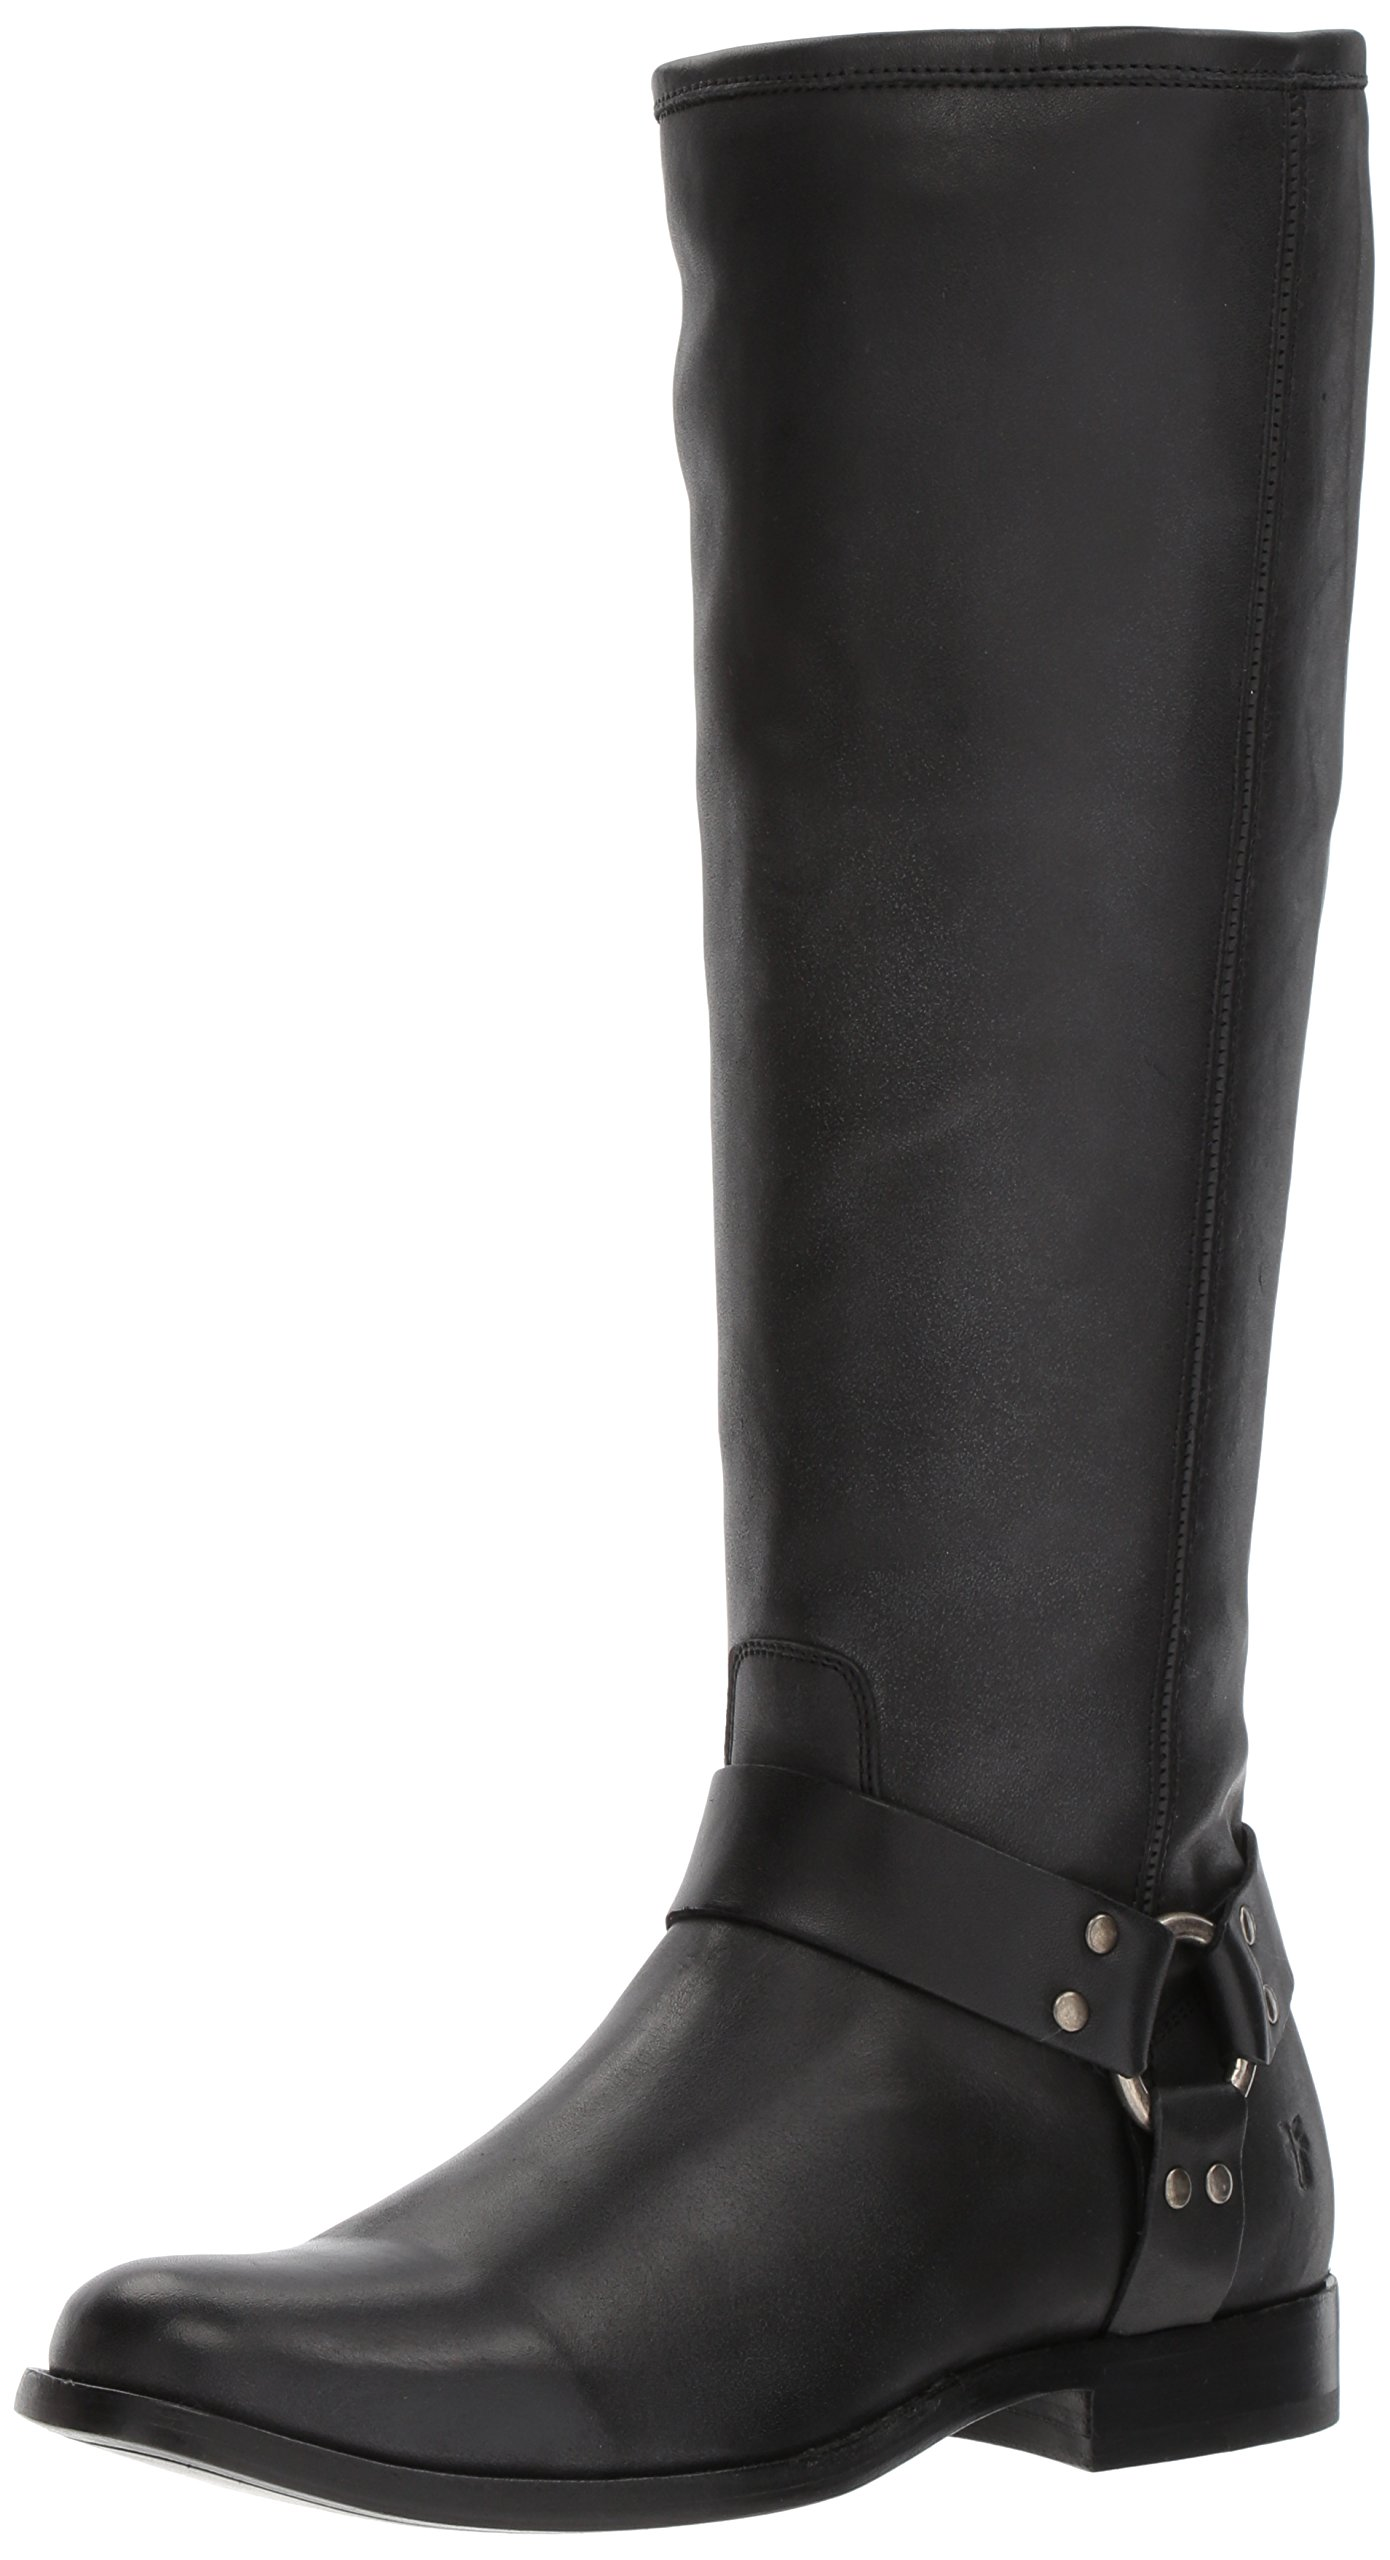 FRYE Women's Phillip Tall Harness Boot, Black, 8.5 M US